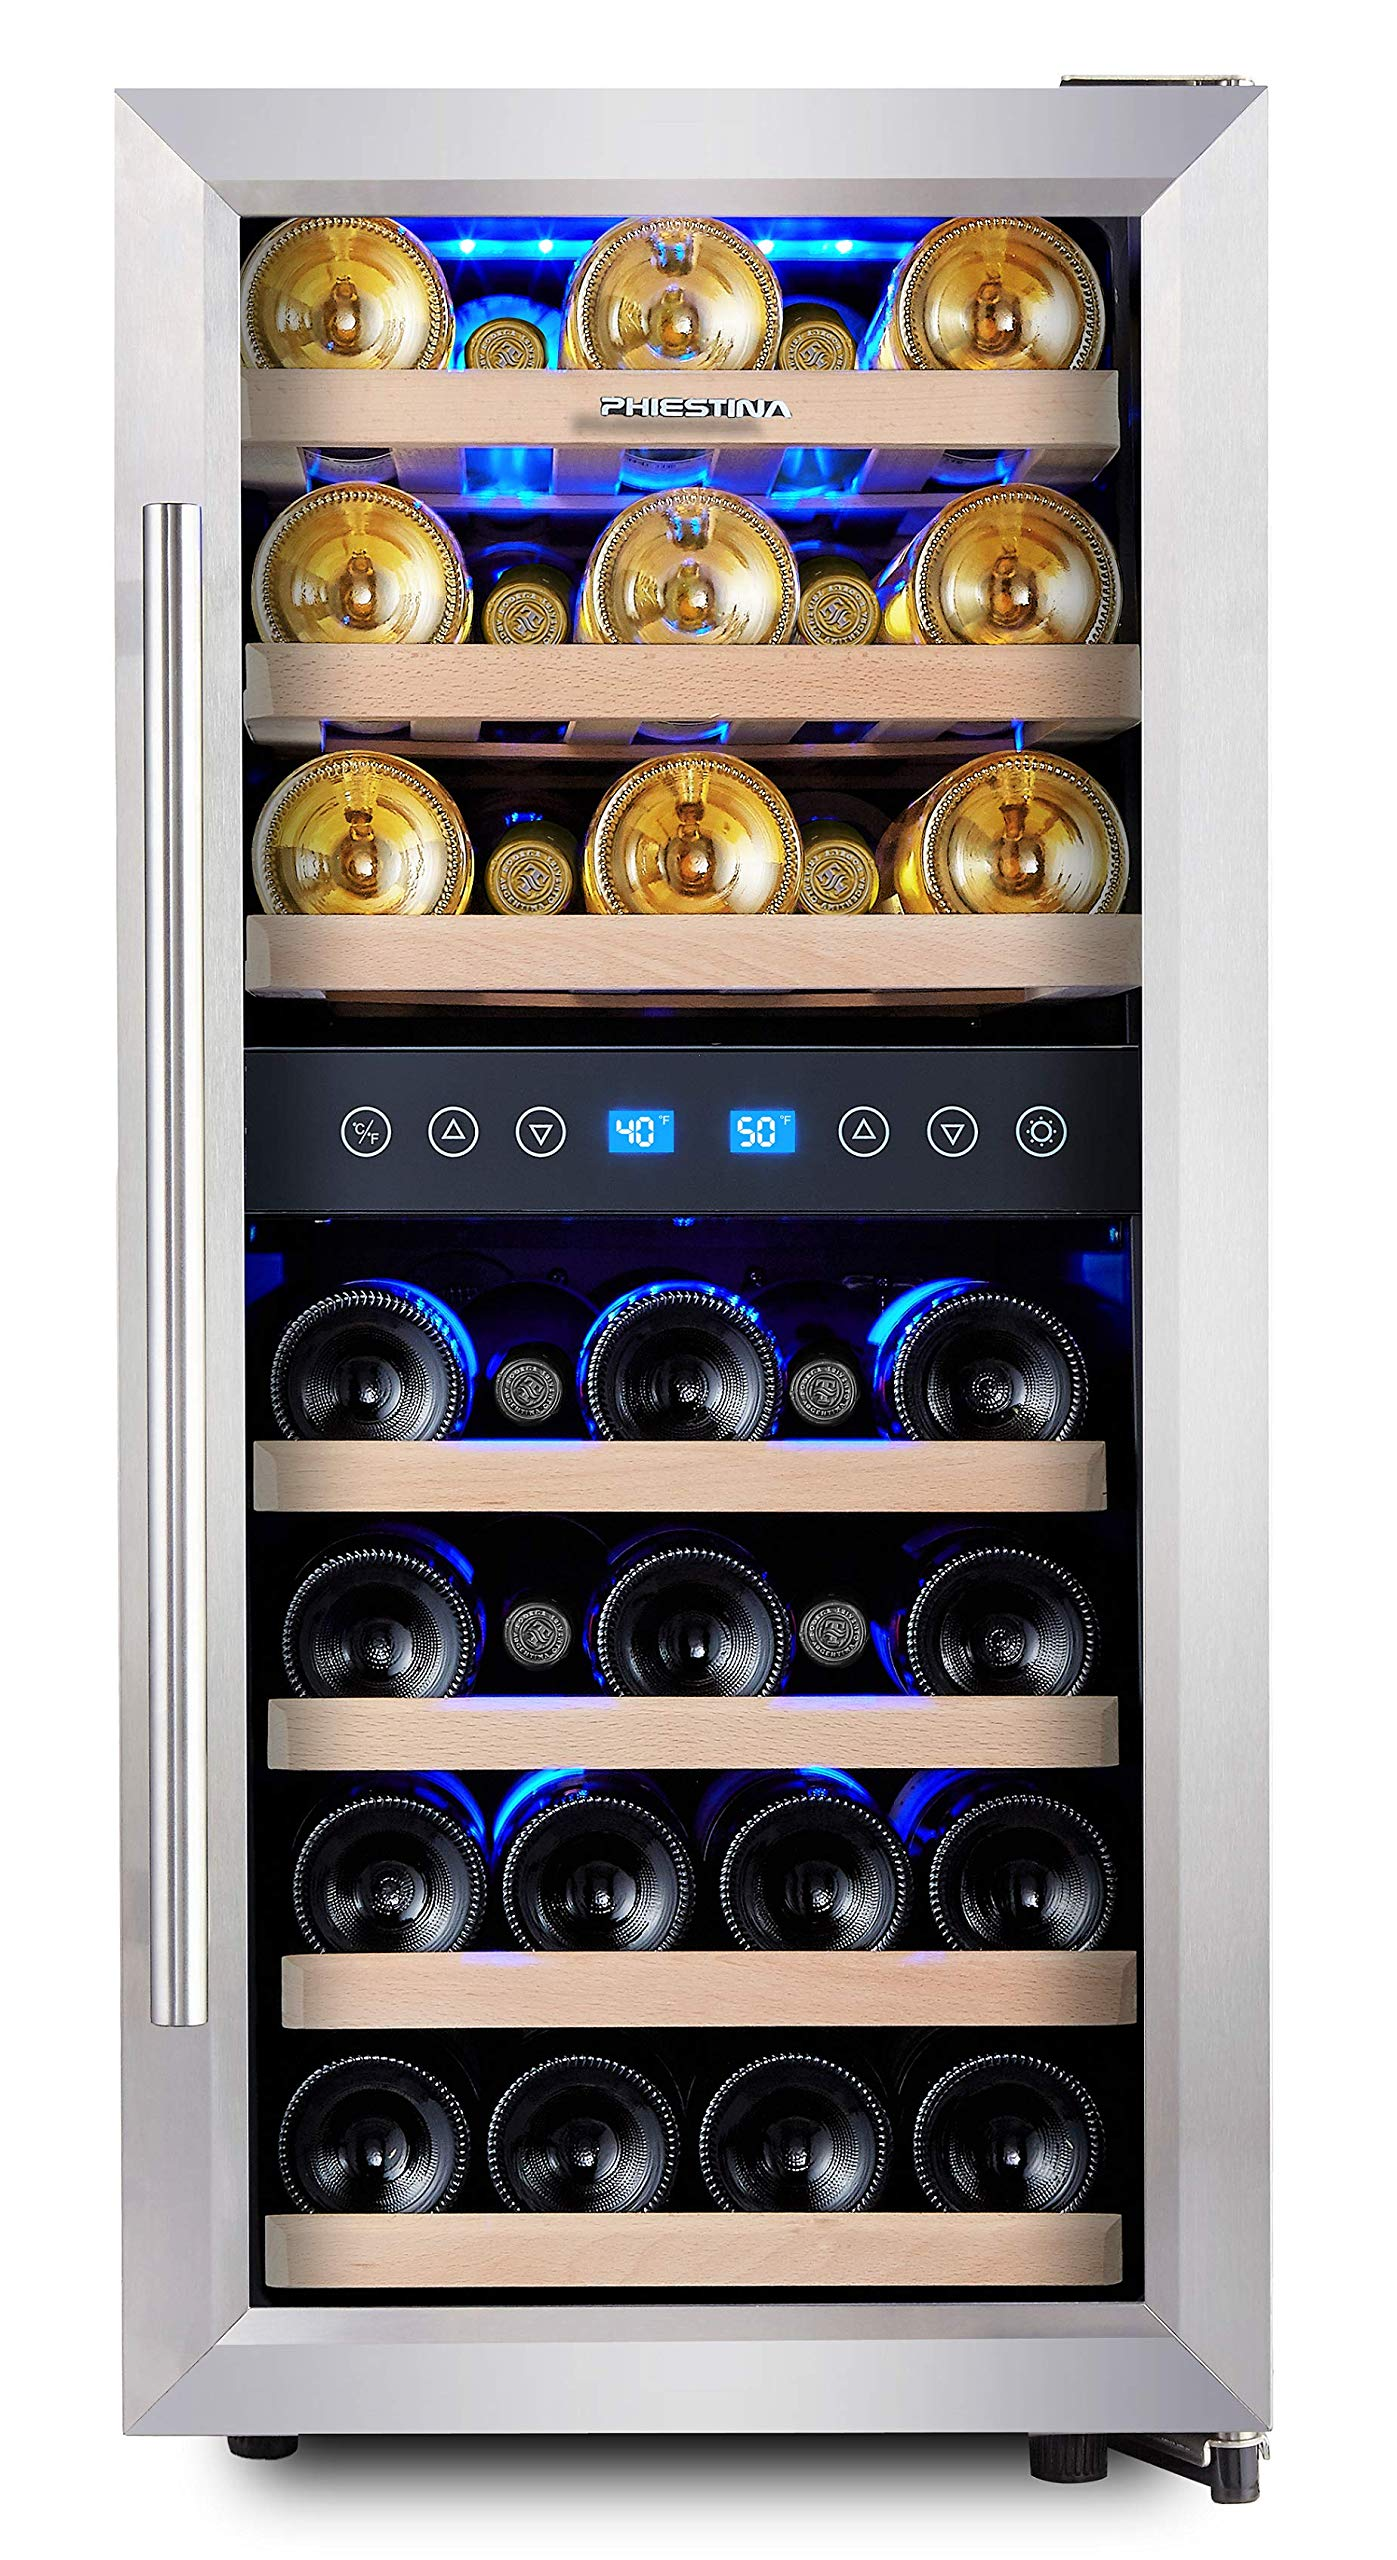 Phiestina 33 Bottle Wine Cooler Refrigerator | 16 Inch Wide Red and White Wine Chiller | Free Standing Glass Door Wine Cellar | Quiet Operation Fridge | Digital Memory Temperature Control